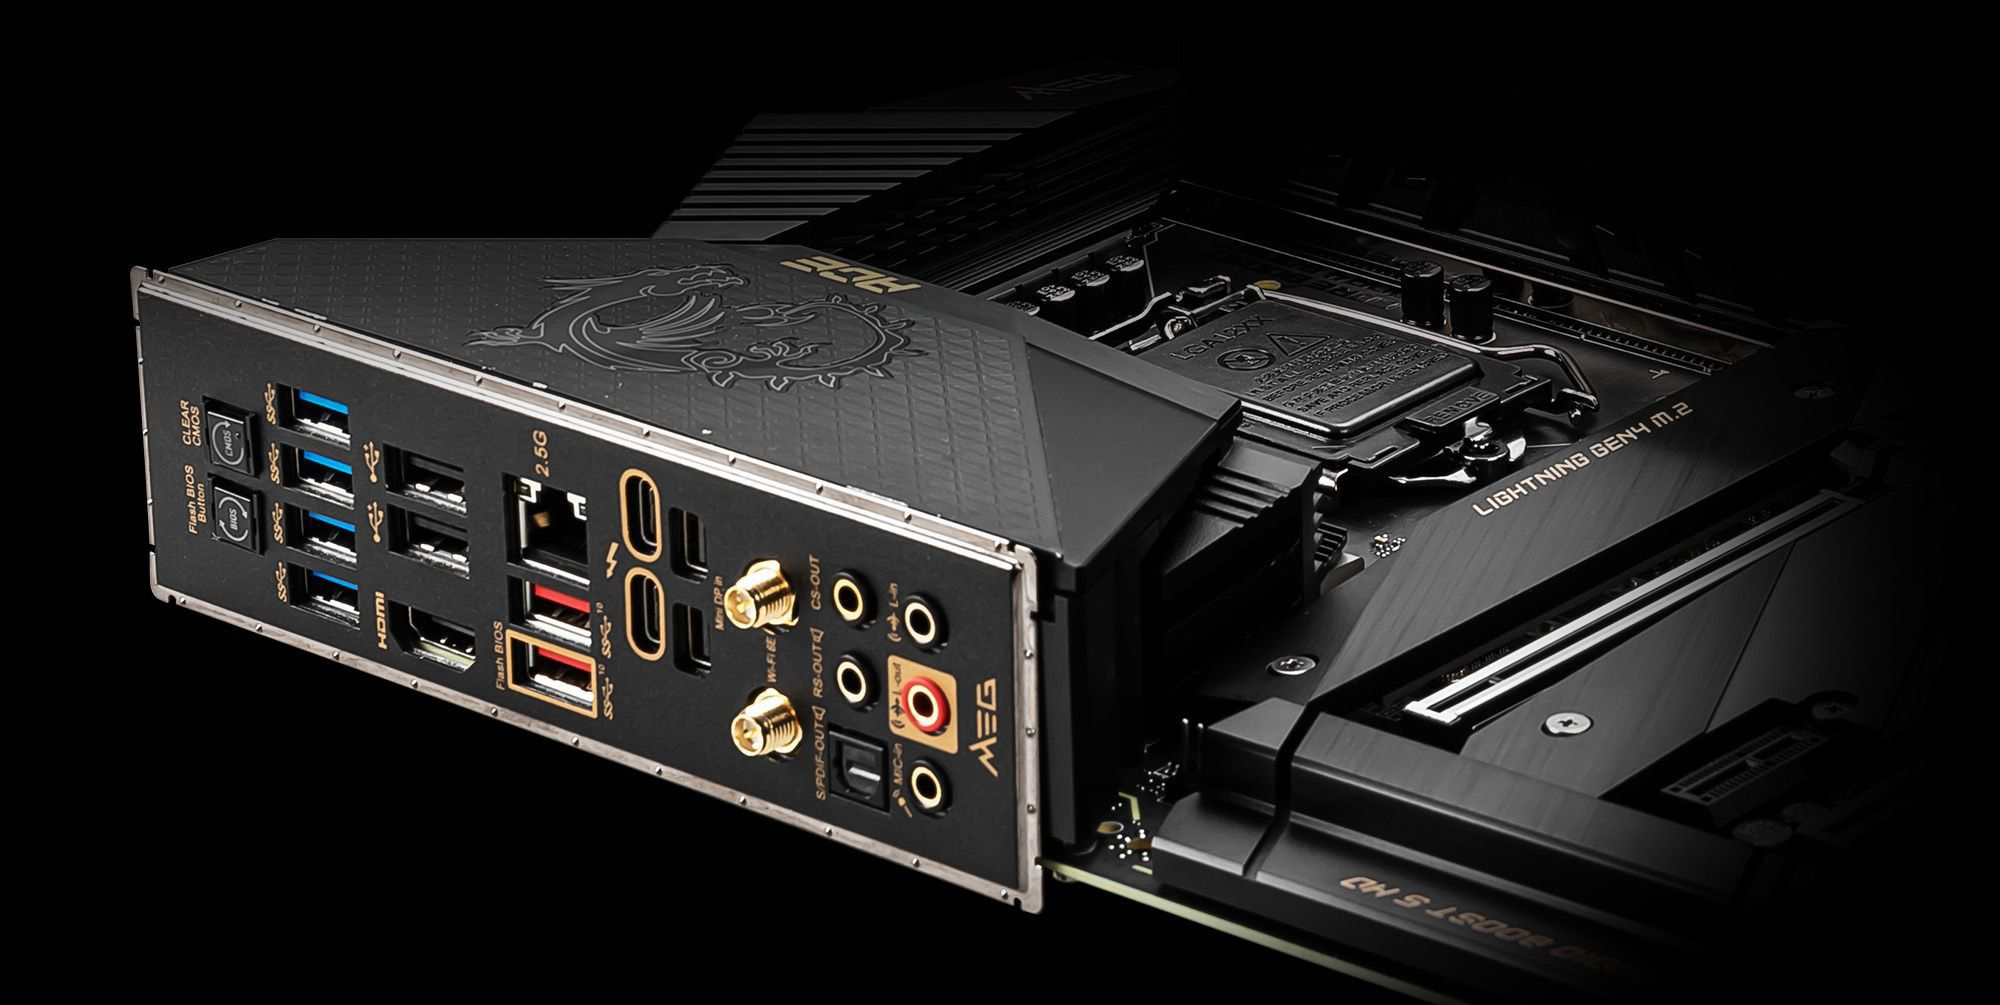 MSI Z590 500 Series Motherboard Features Premium Connectivity